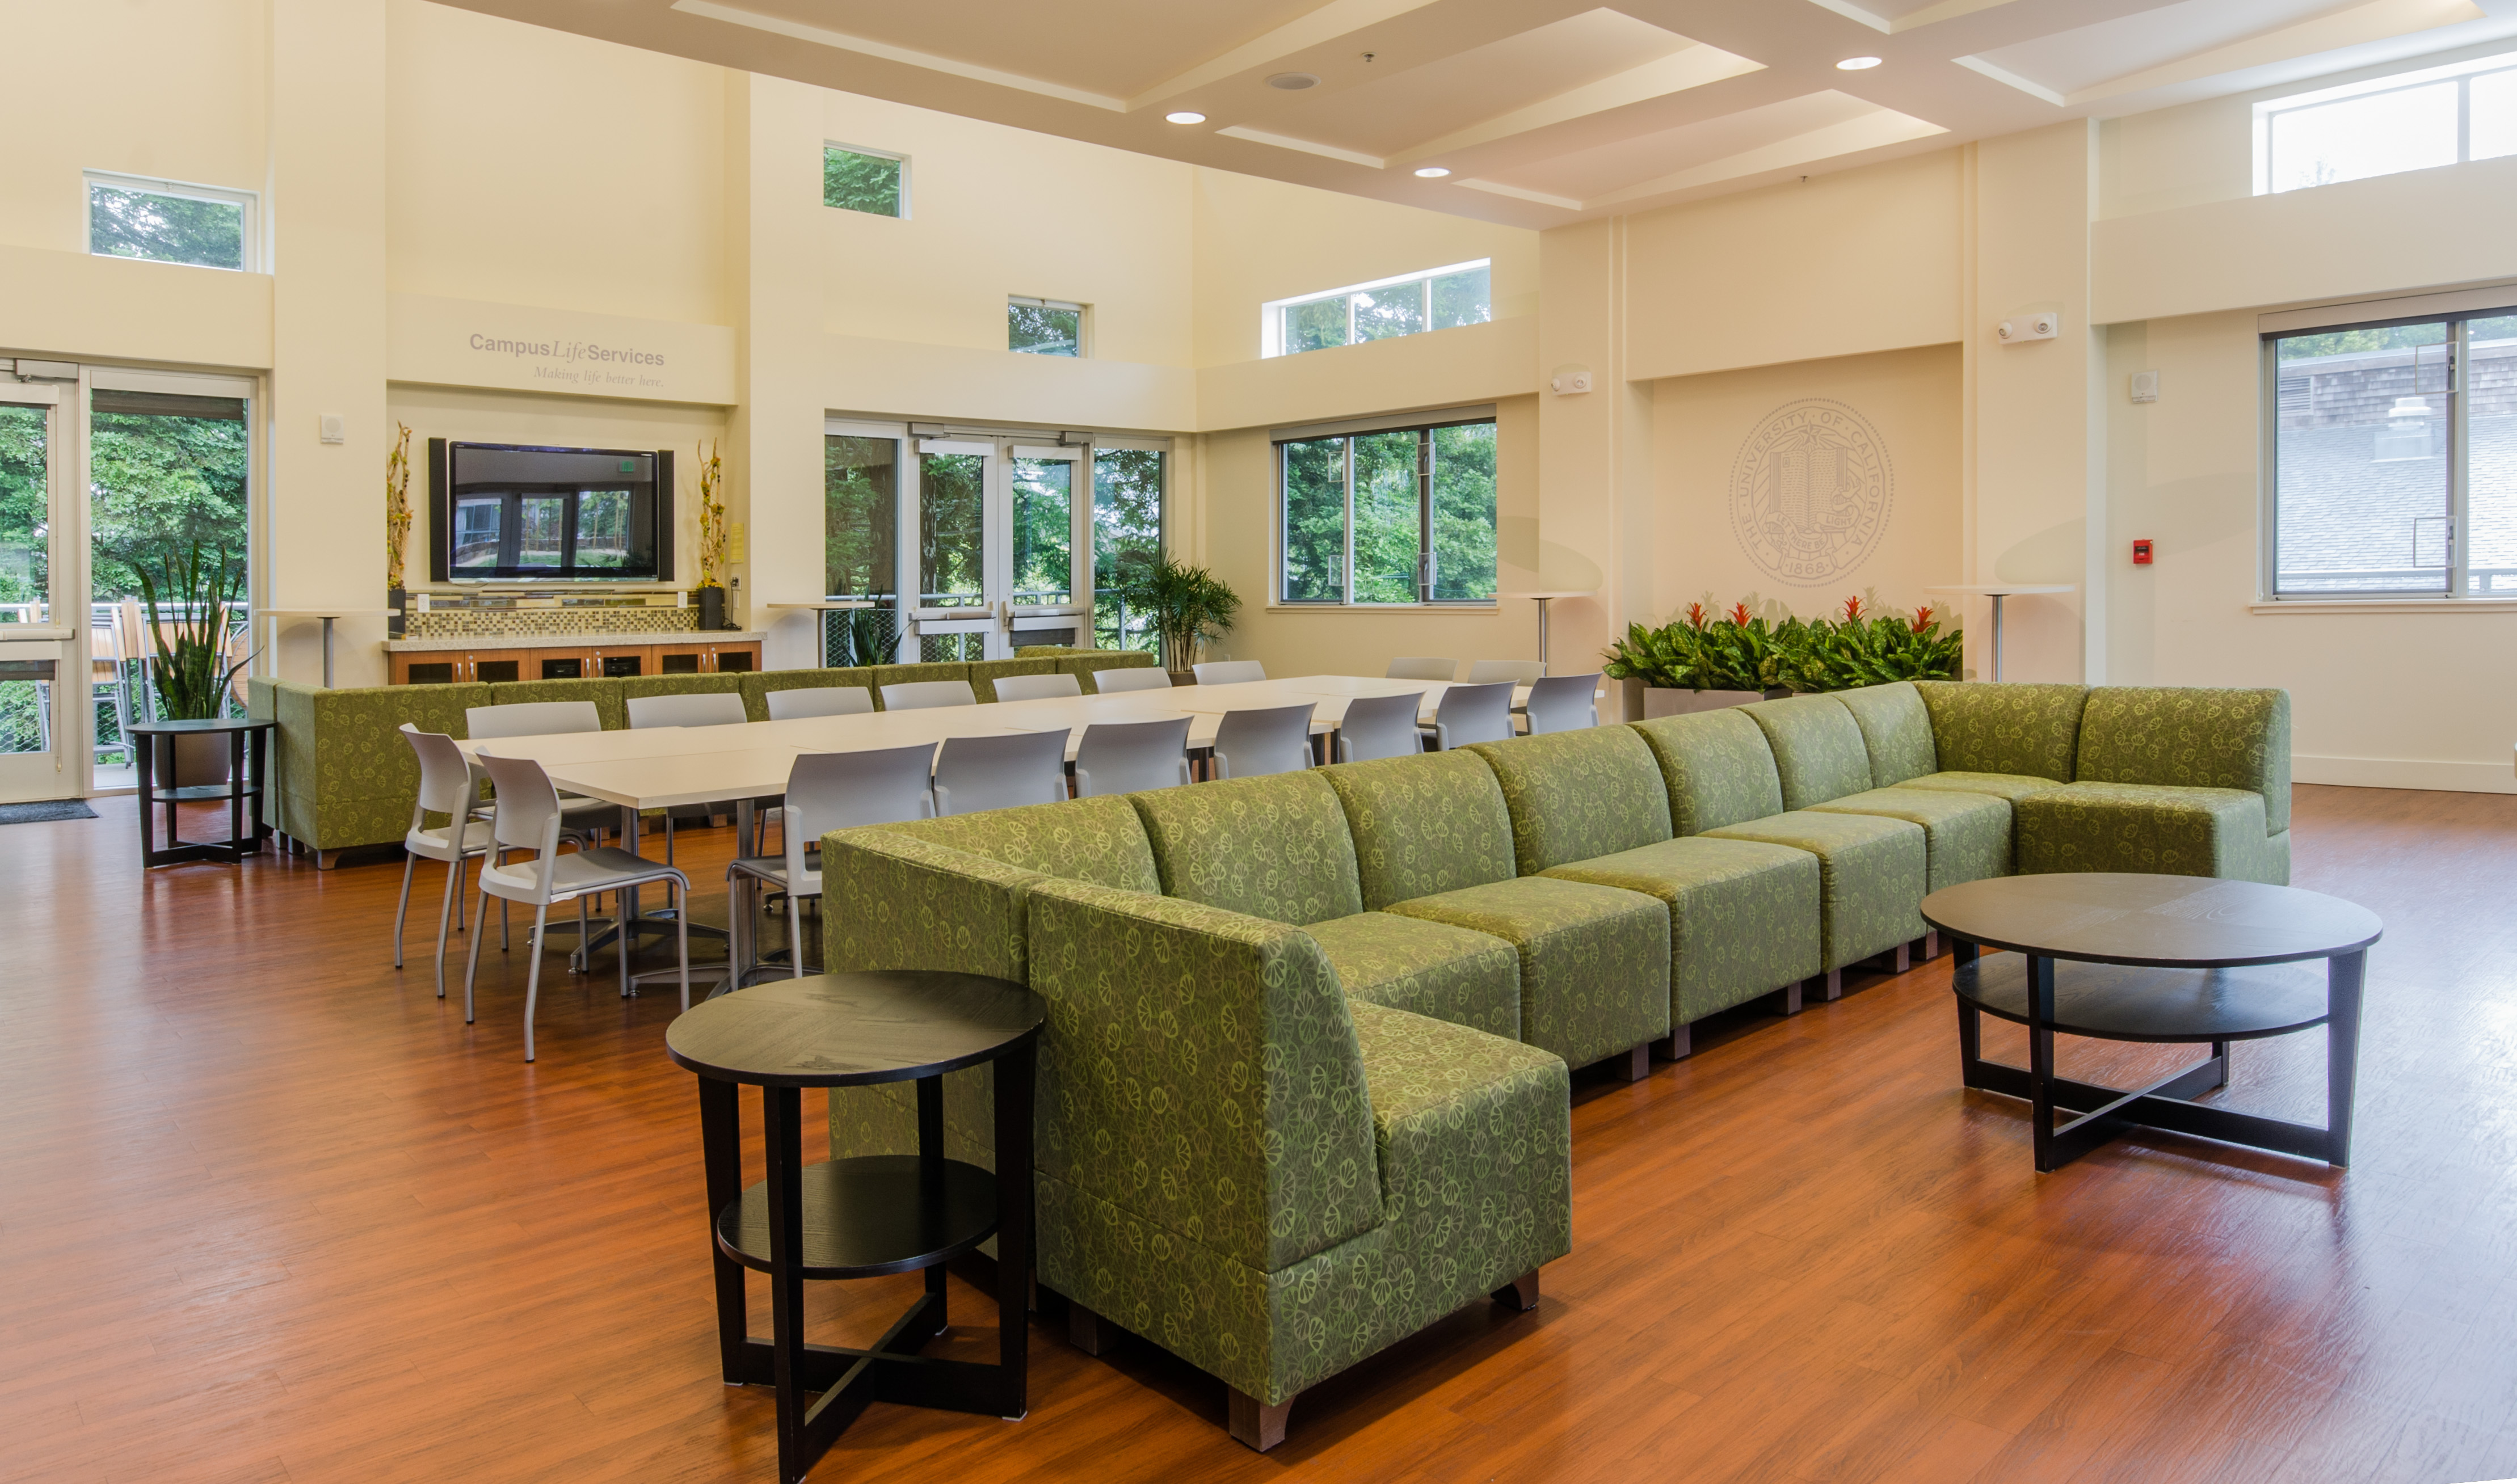 How To Reserve Ucsf Study Room